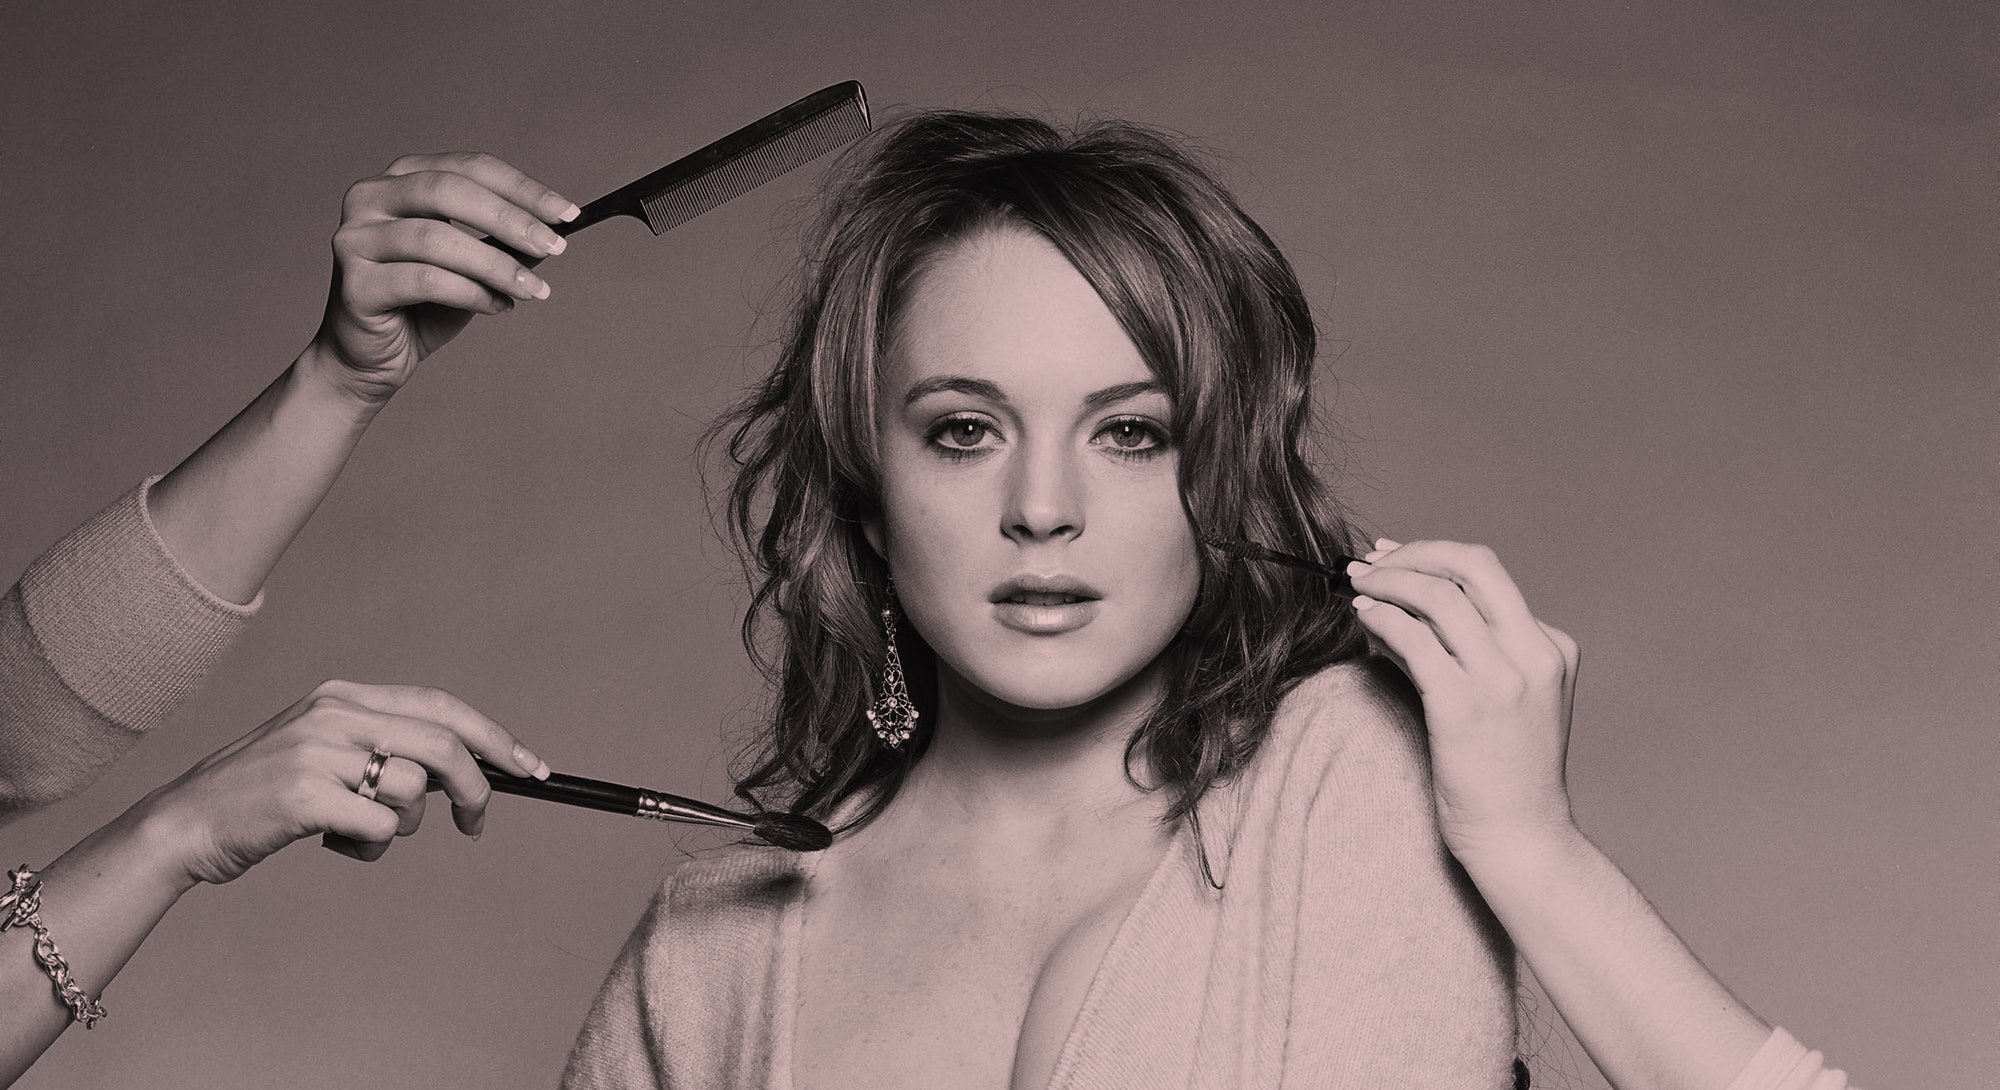 Lindsay Lohan of Mean Girls poses in promotional film image that has her getting a makeover.